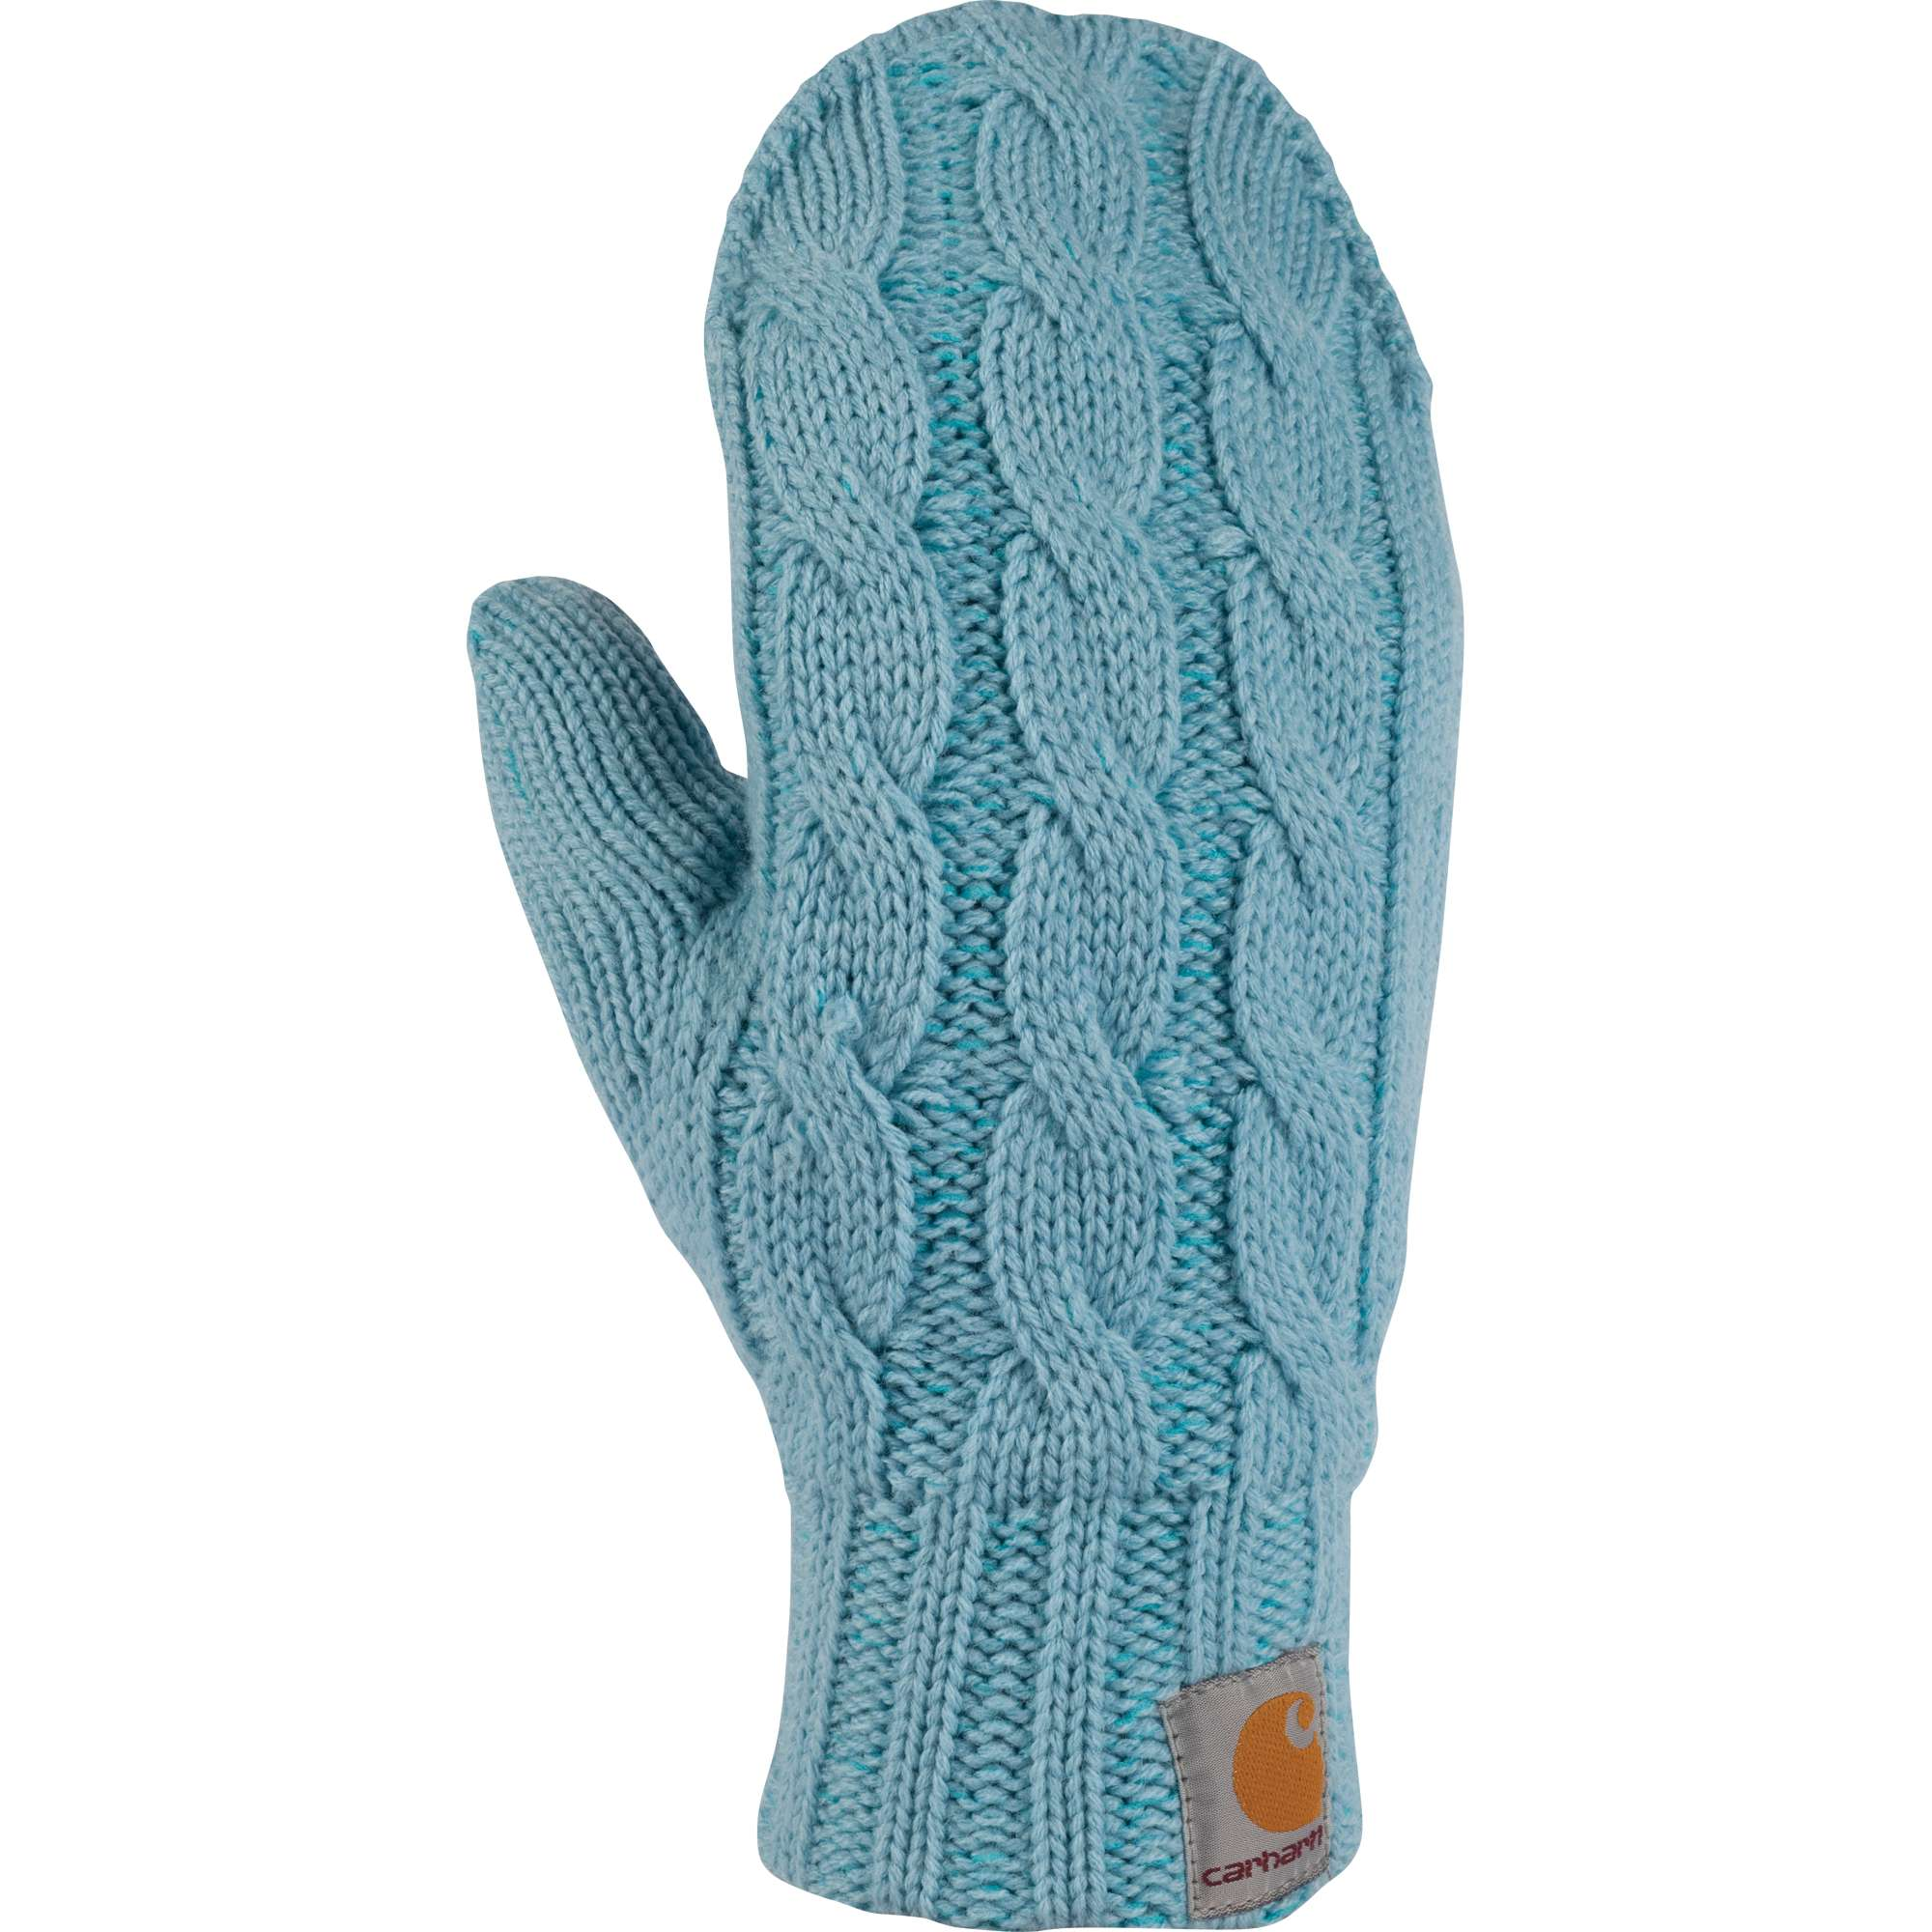 Carhartt Cable Knit Mitt